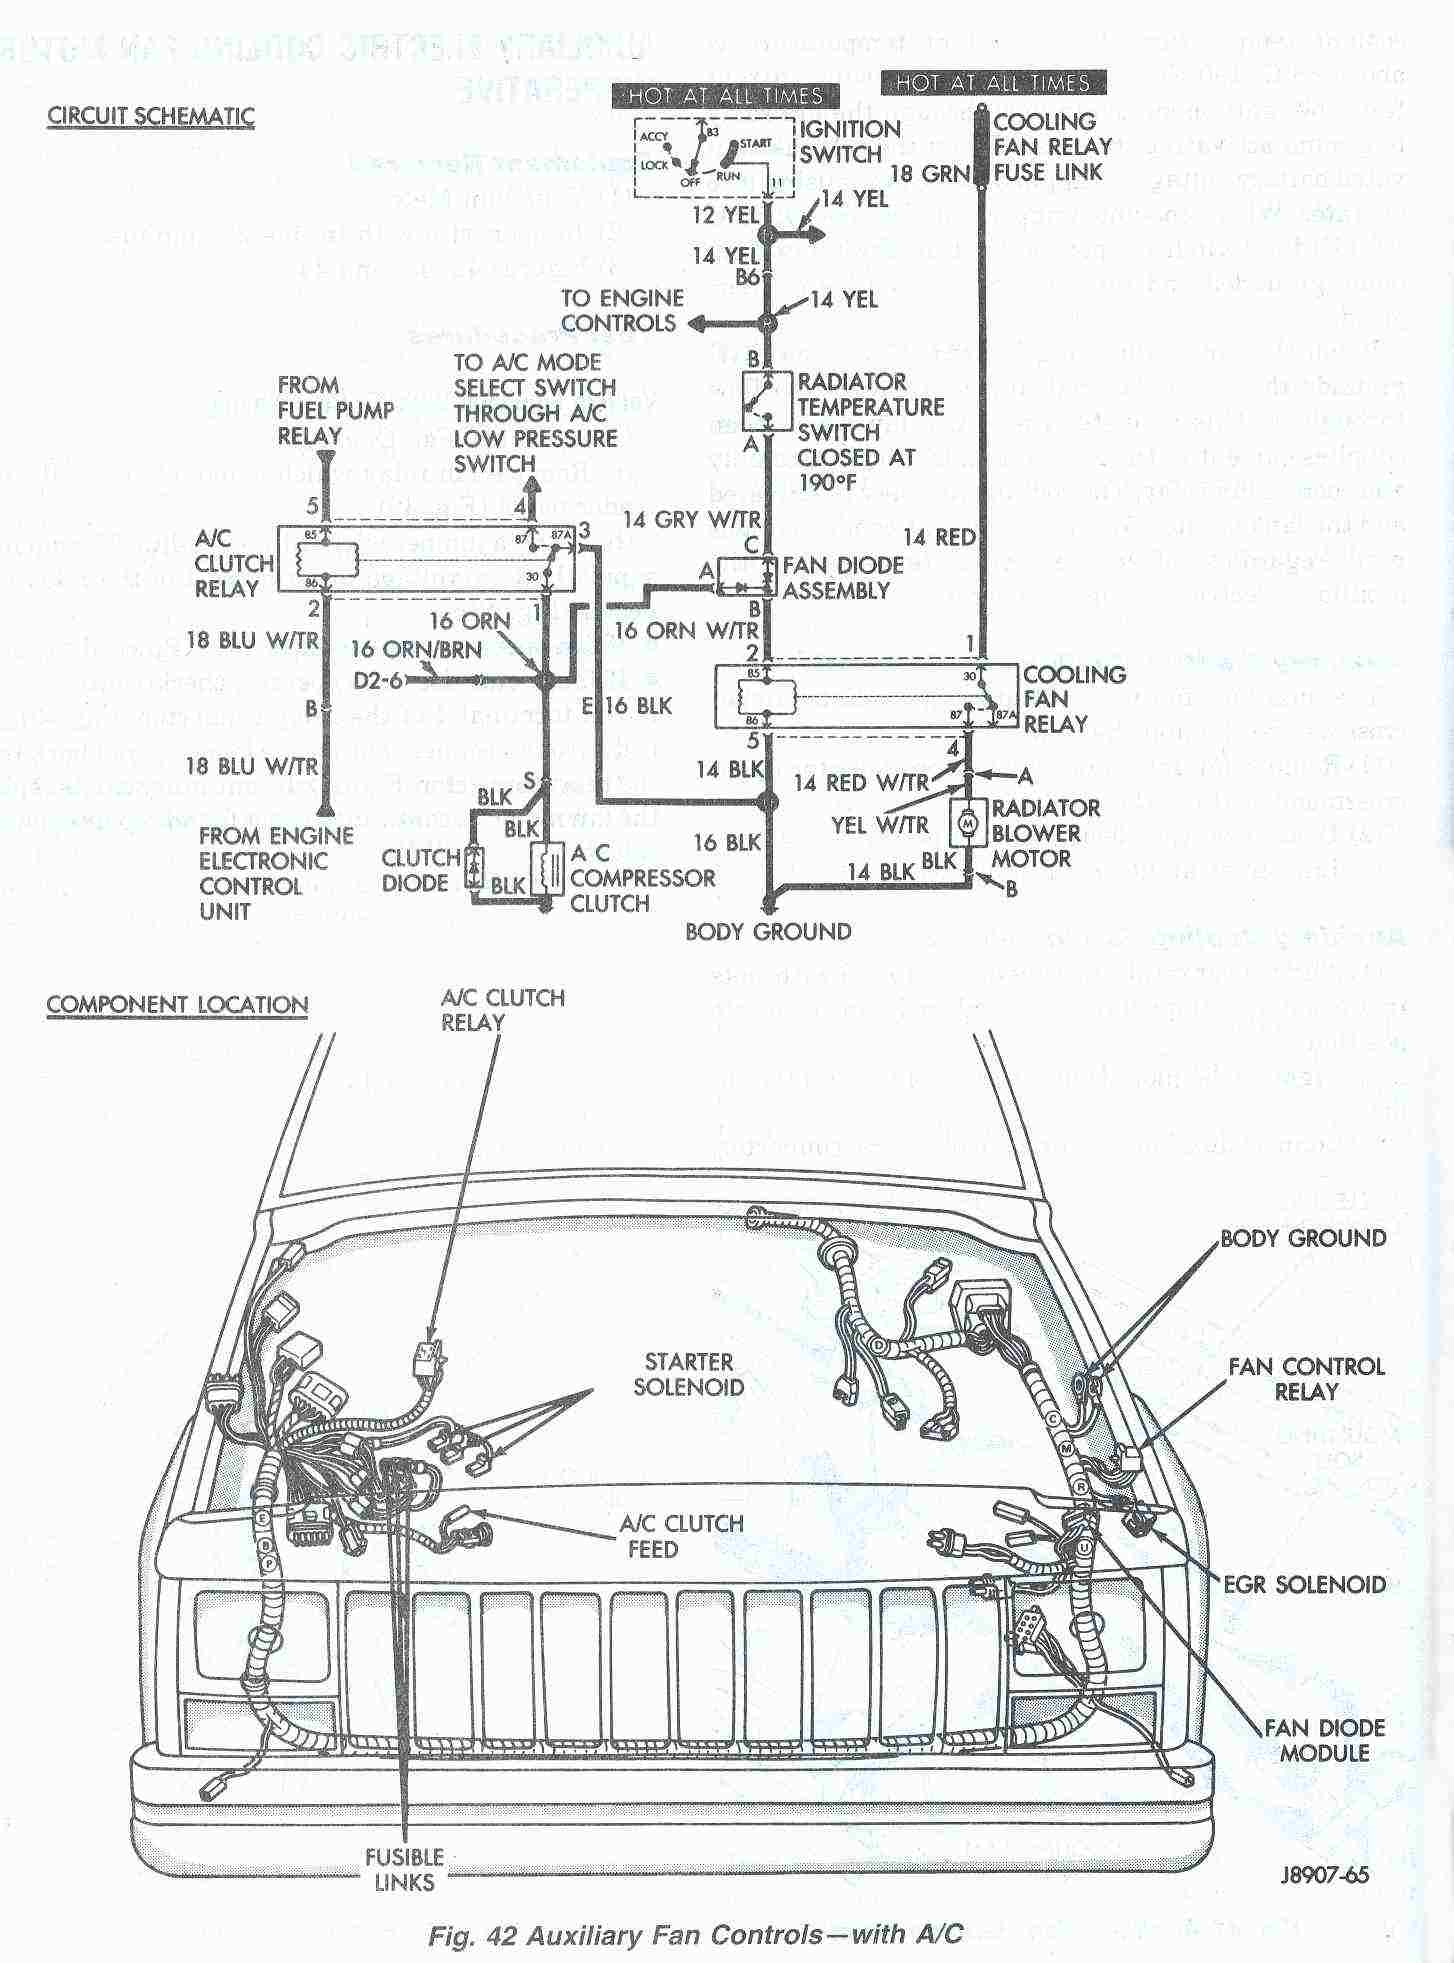 Auxiliary_Fan_Schematic_Fig_42 jeep cherokee cooling system electric cooling fan 1989 jeep cherokee engine wiring harness at reclaimingppi.co